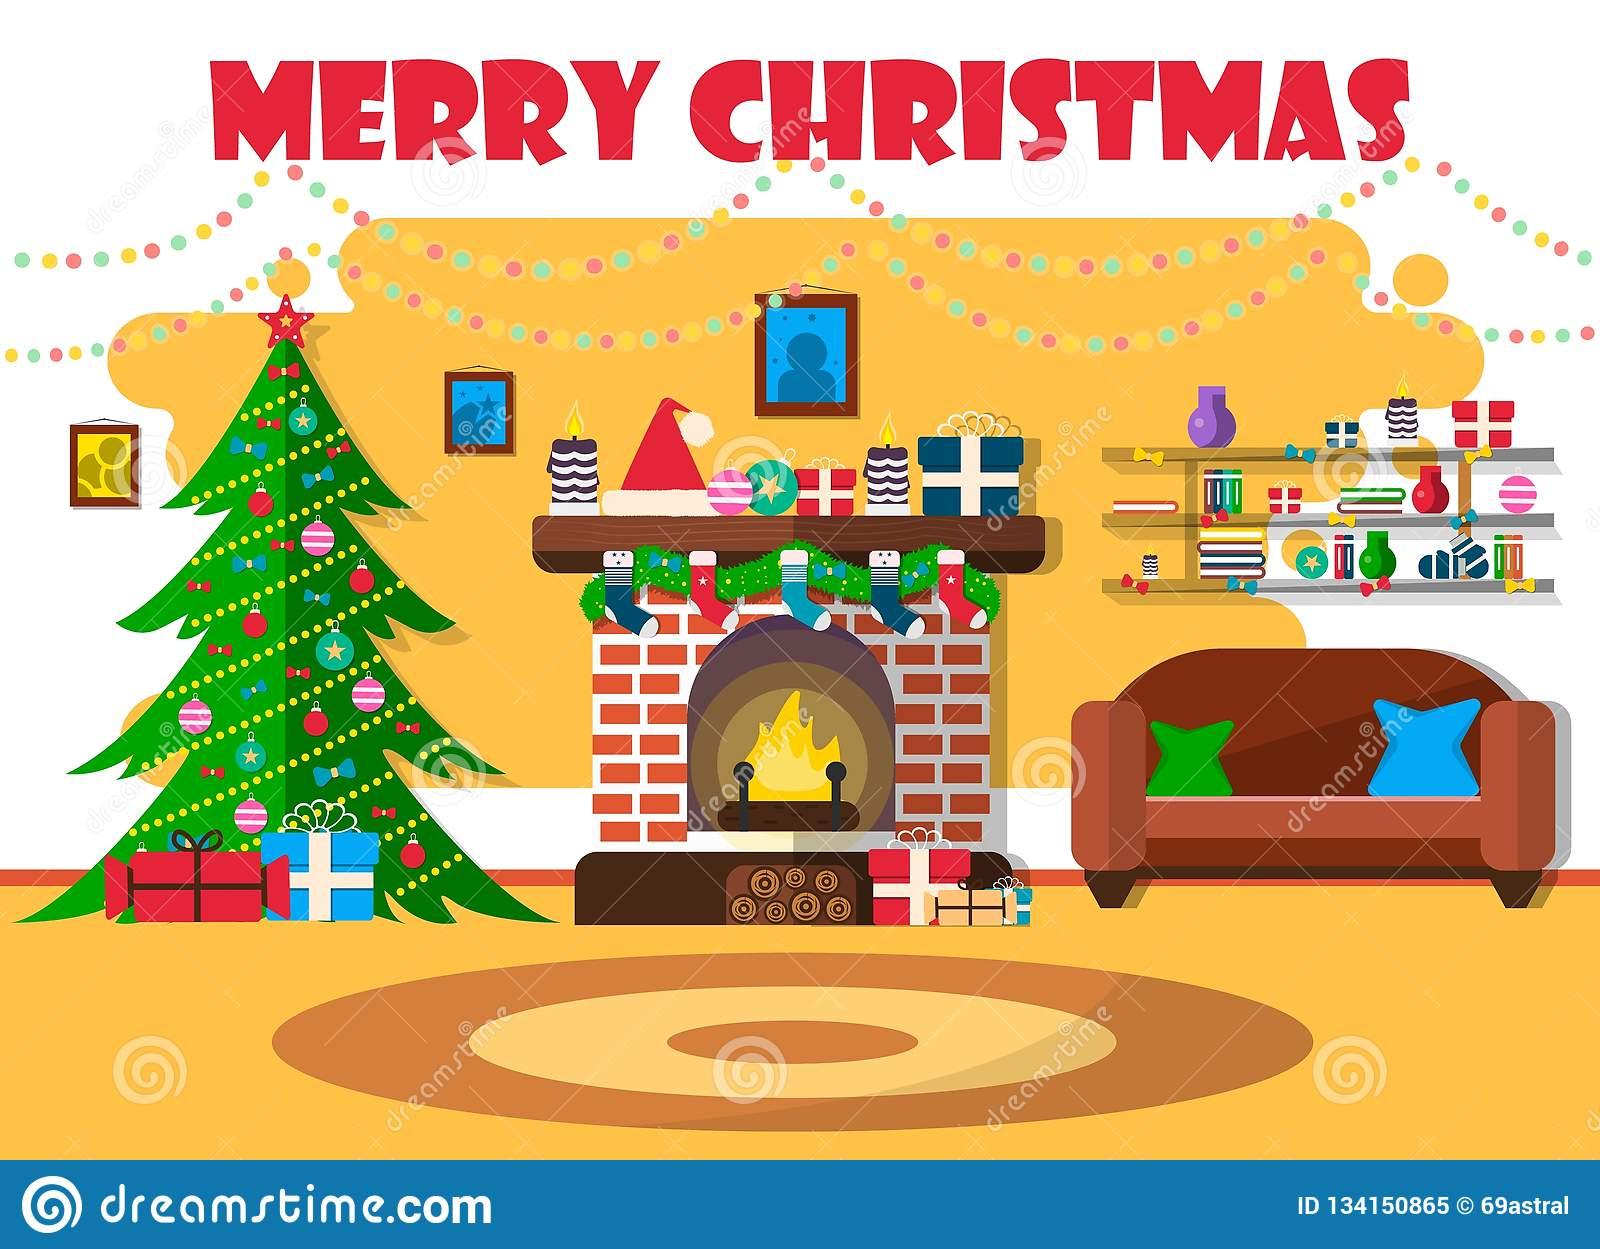 Vector illustration for Christmas with Christmas tree and retro furniture. Flat design with spruce and fireplace.